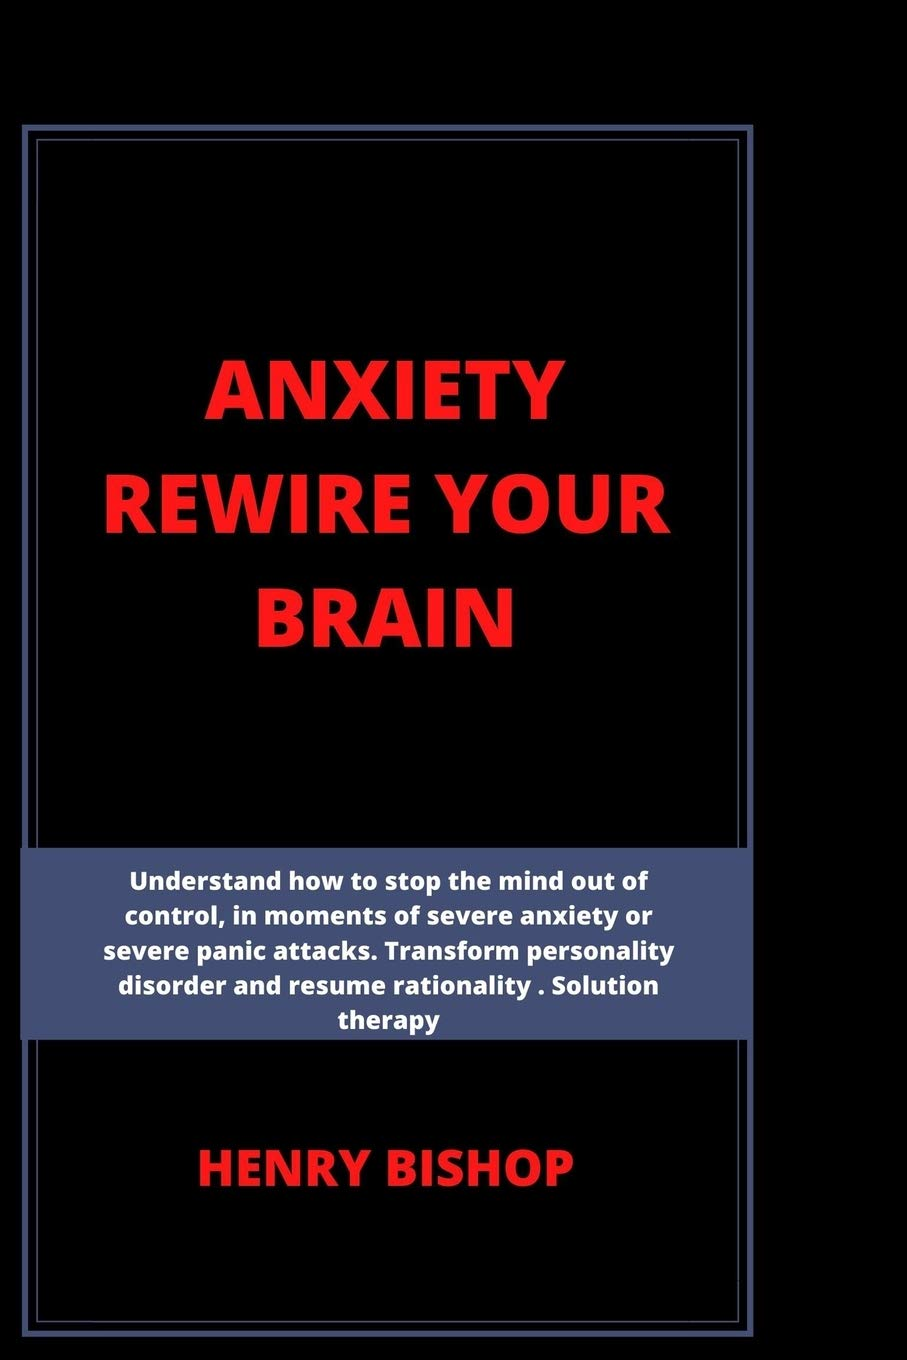 ANXIETY REWIRE YOUR BRAIN: Understand How To Stop The Mind Out Of Control In Moments Of Severe Anxiety Or Severe Panic Attacks. Transform Personality Disorder And Resume Rationality. Solution Therapy